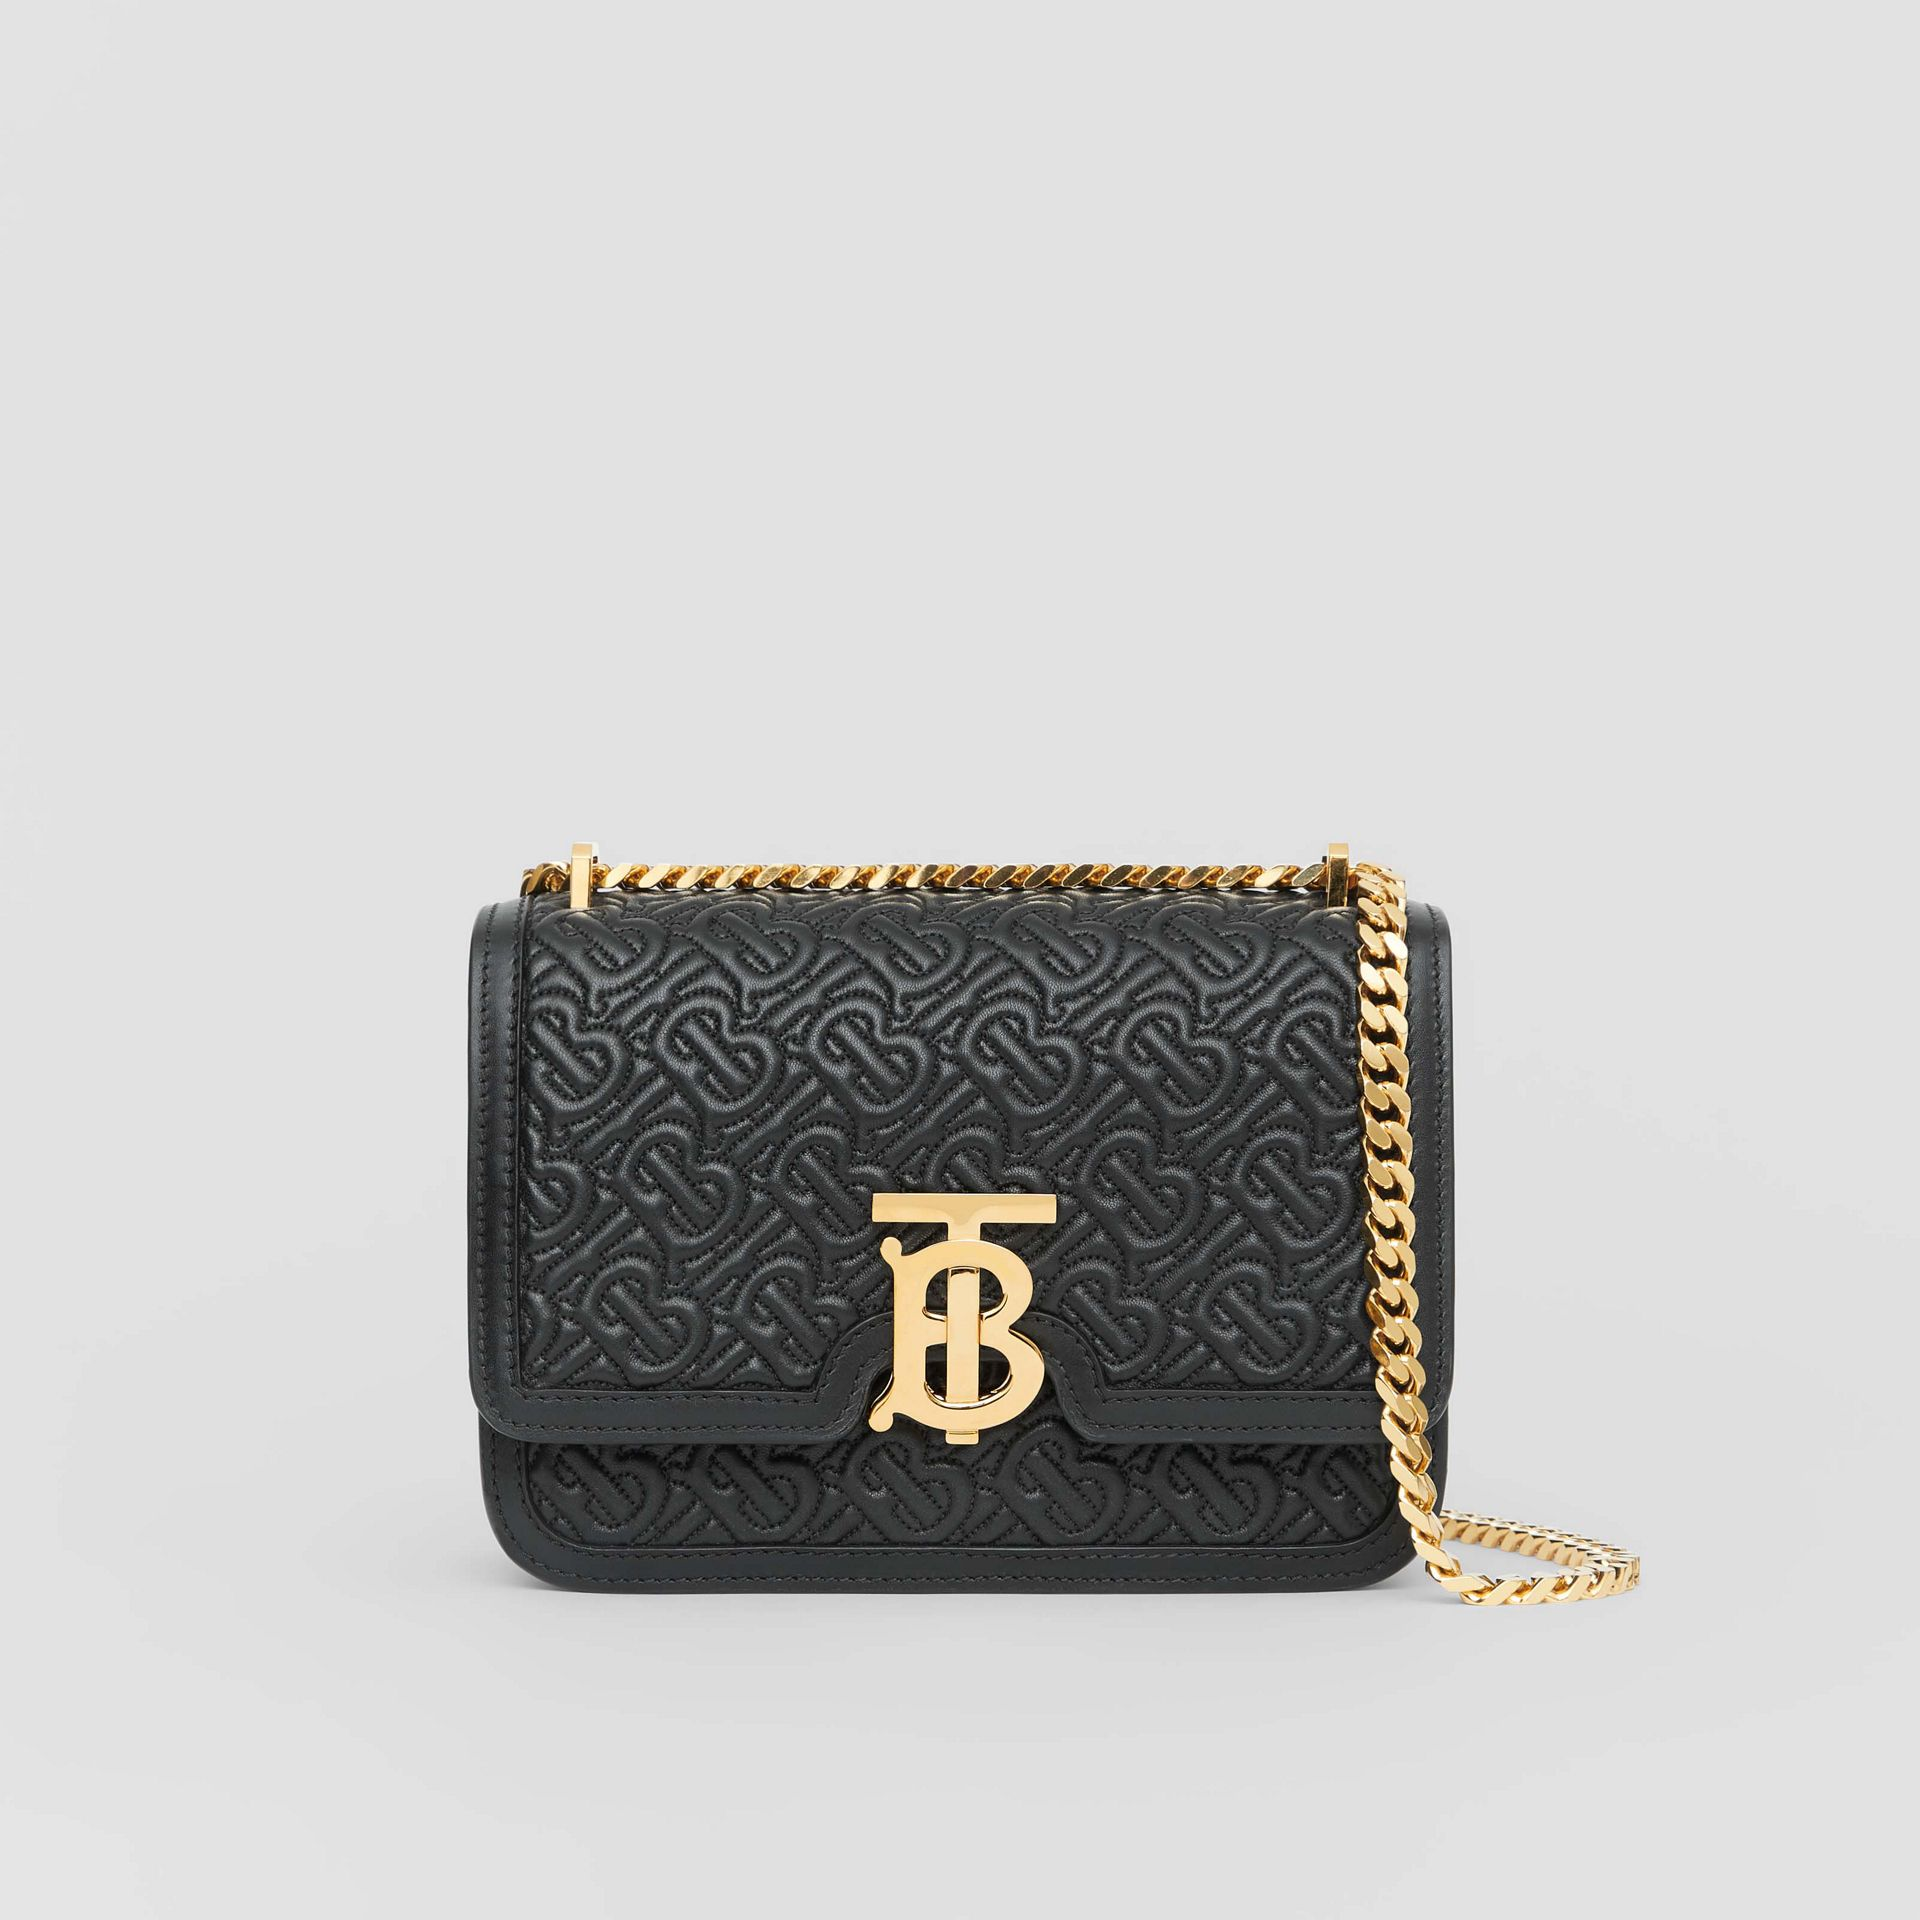 Small Quilted Monogram Lambskin TB Bag in Black - Women | Burberry Canada - gallery image 0